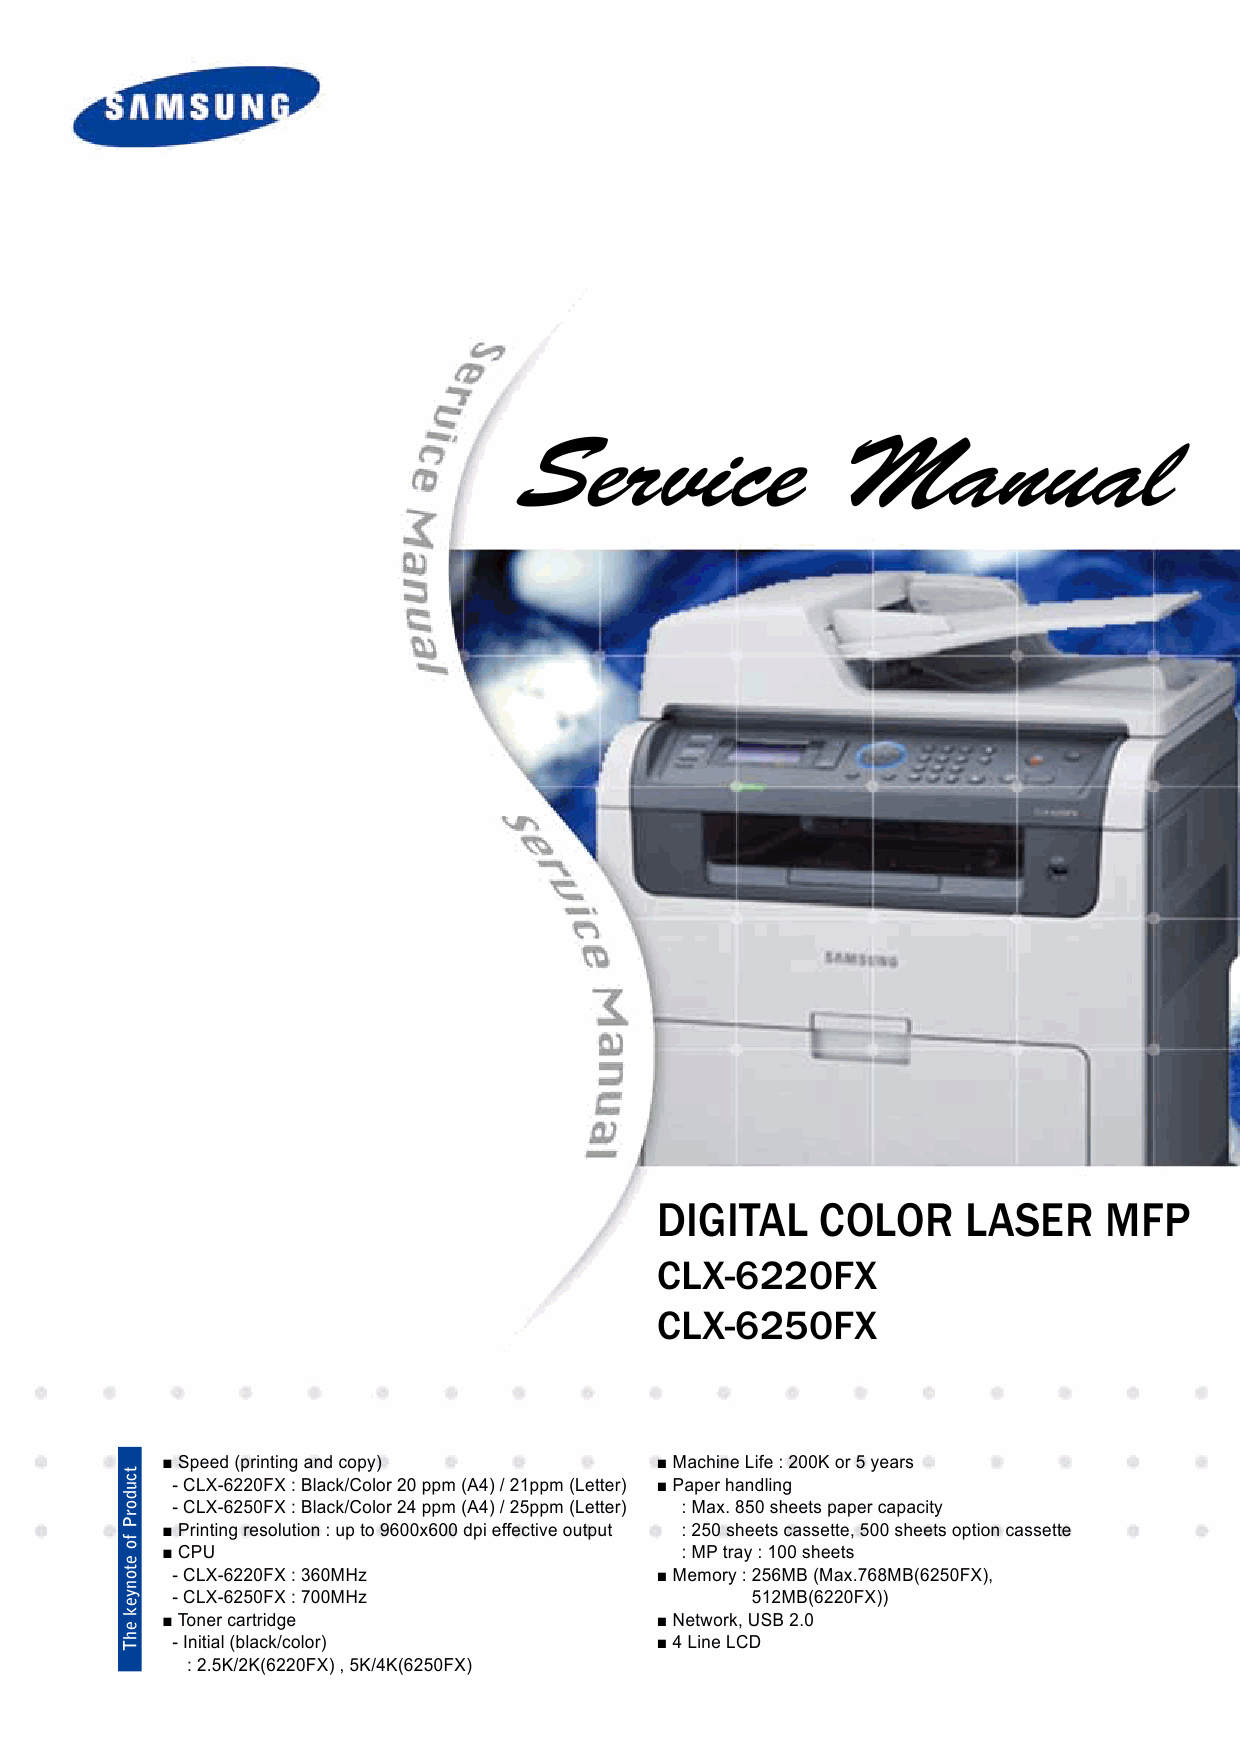 Samsung Digital-Color-Laser-MFP CLX-6220FX 6250FX Parts and Service Manual-1